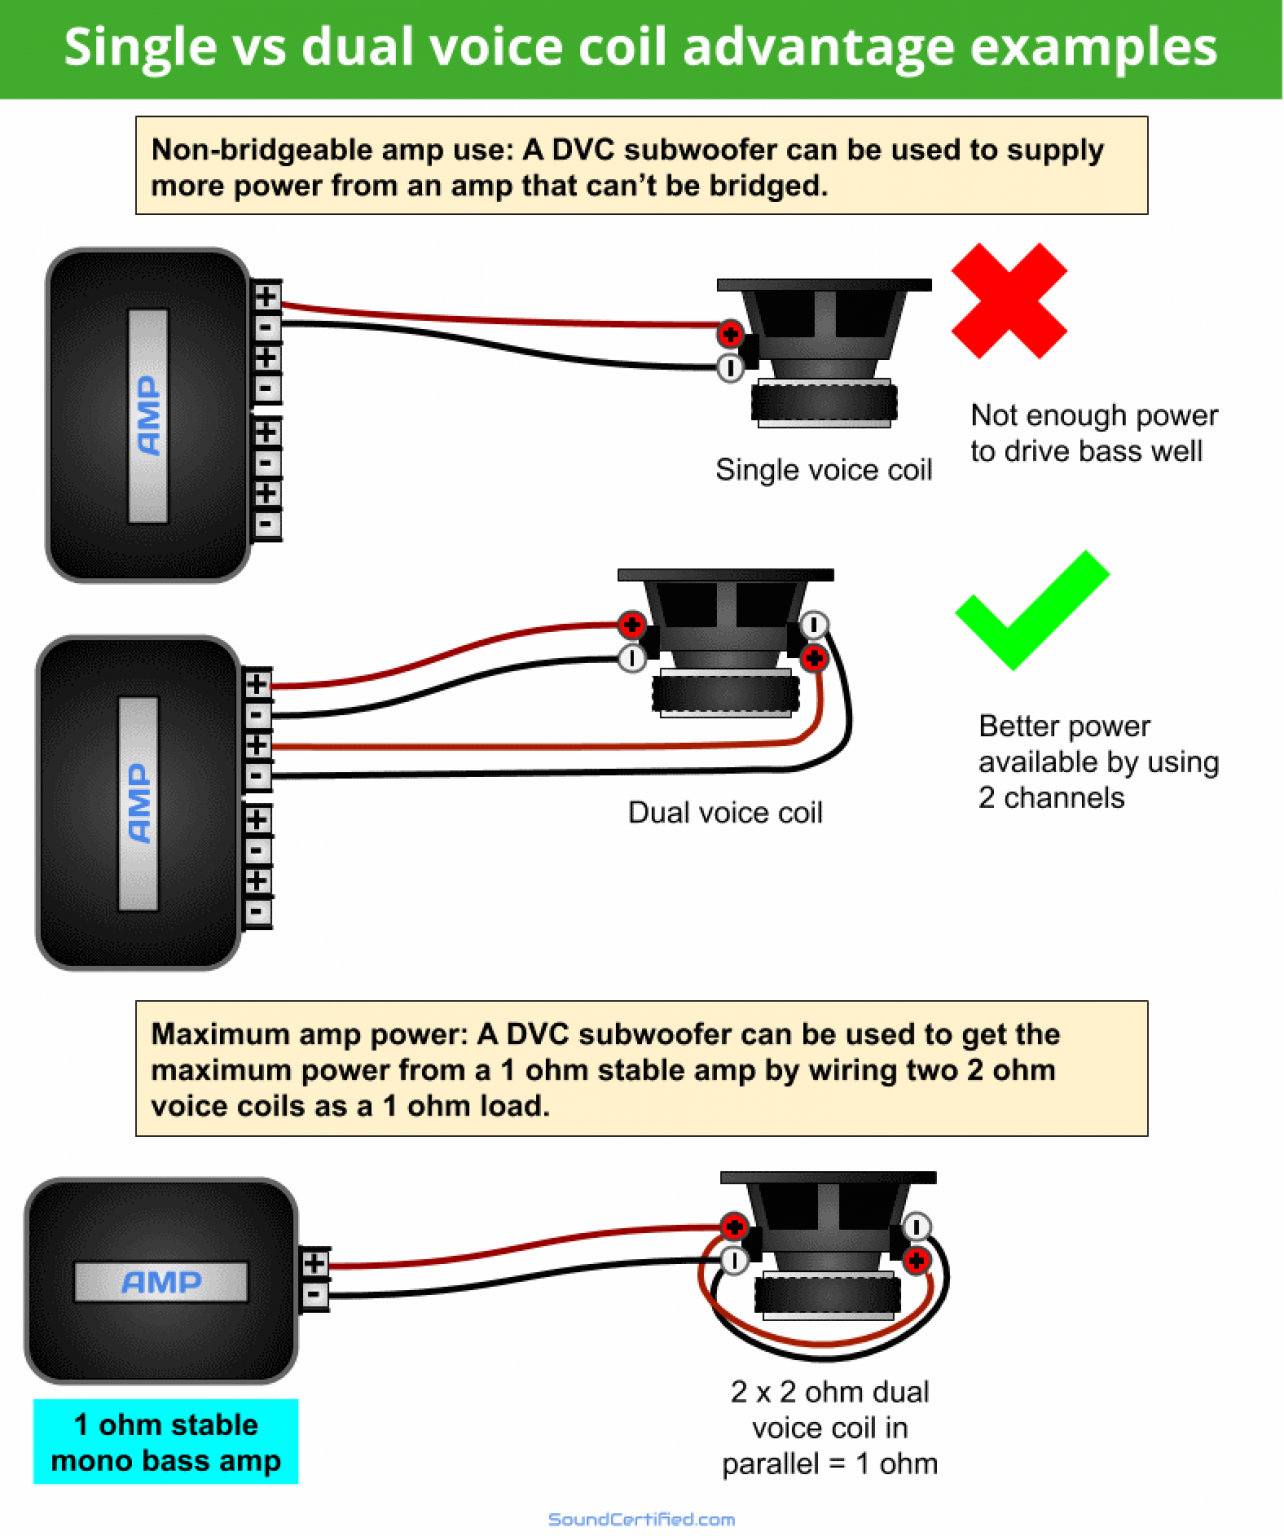 How To Wire A Dual Voice Coil Speaker Subwoofer Wiring Diagrams Subwoofer Wiring Subwoofer Car Stereo Systems